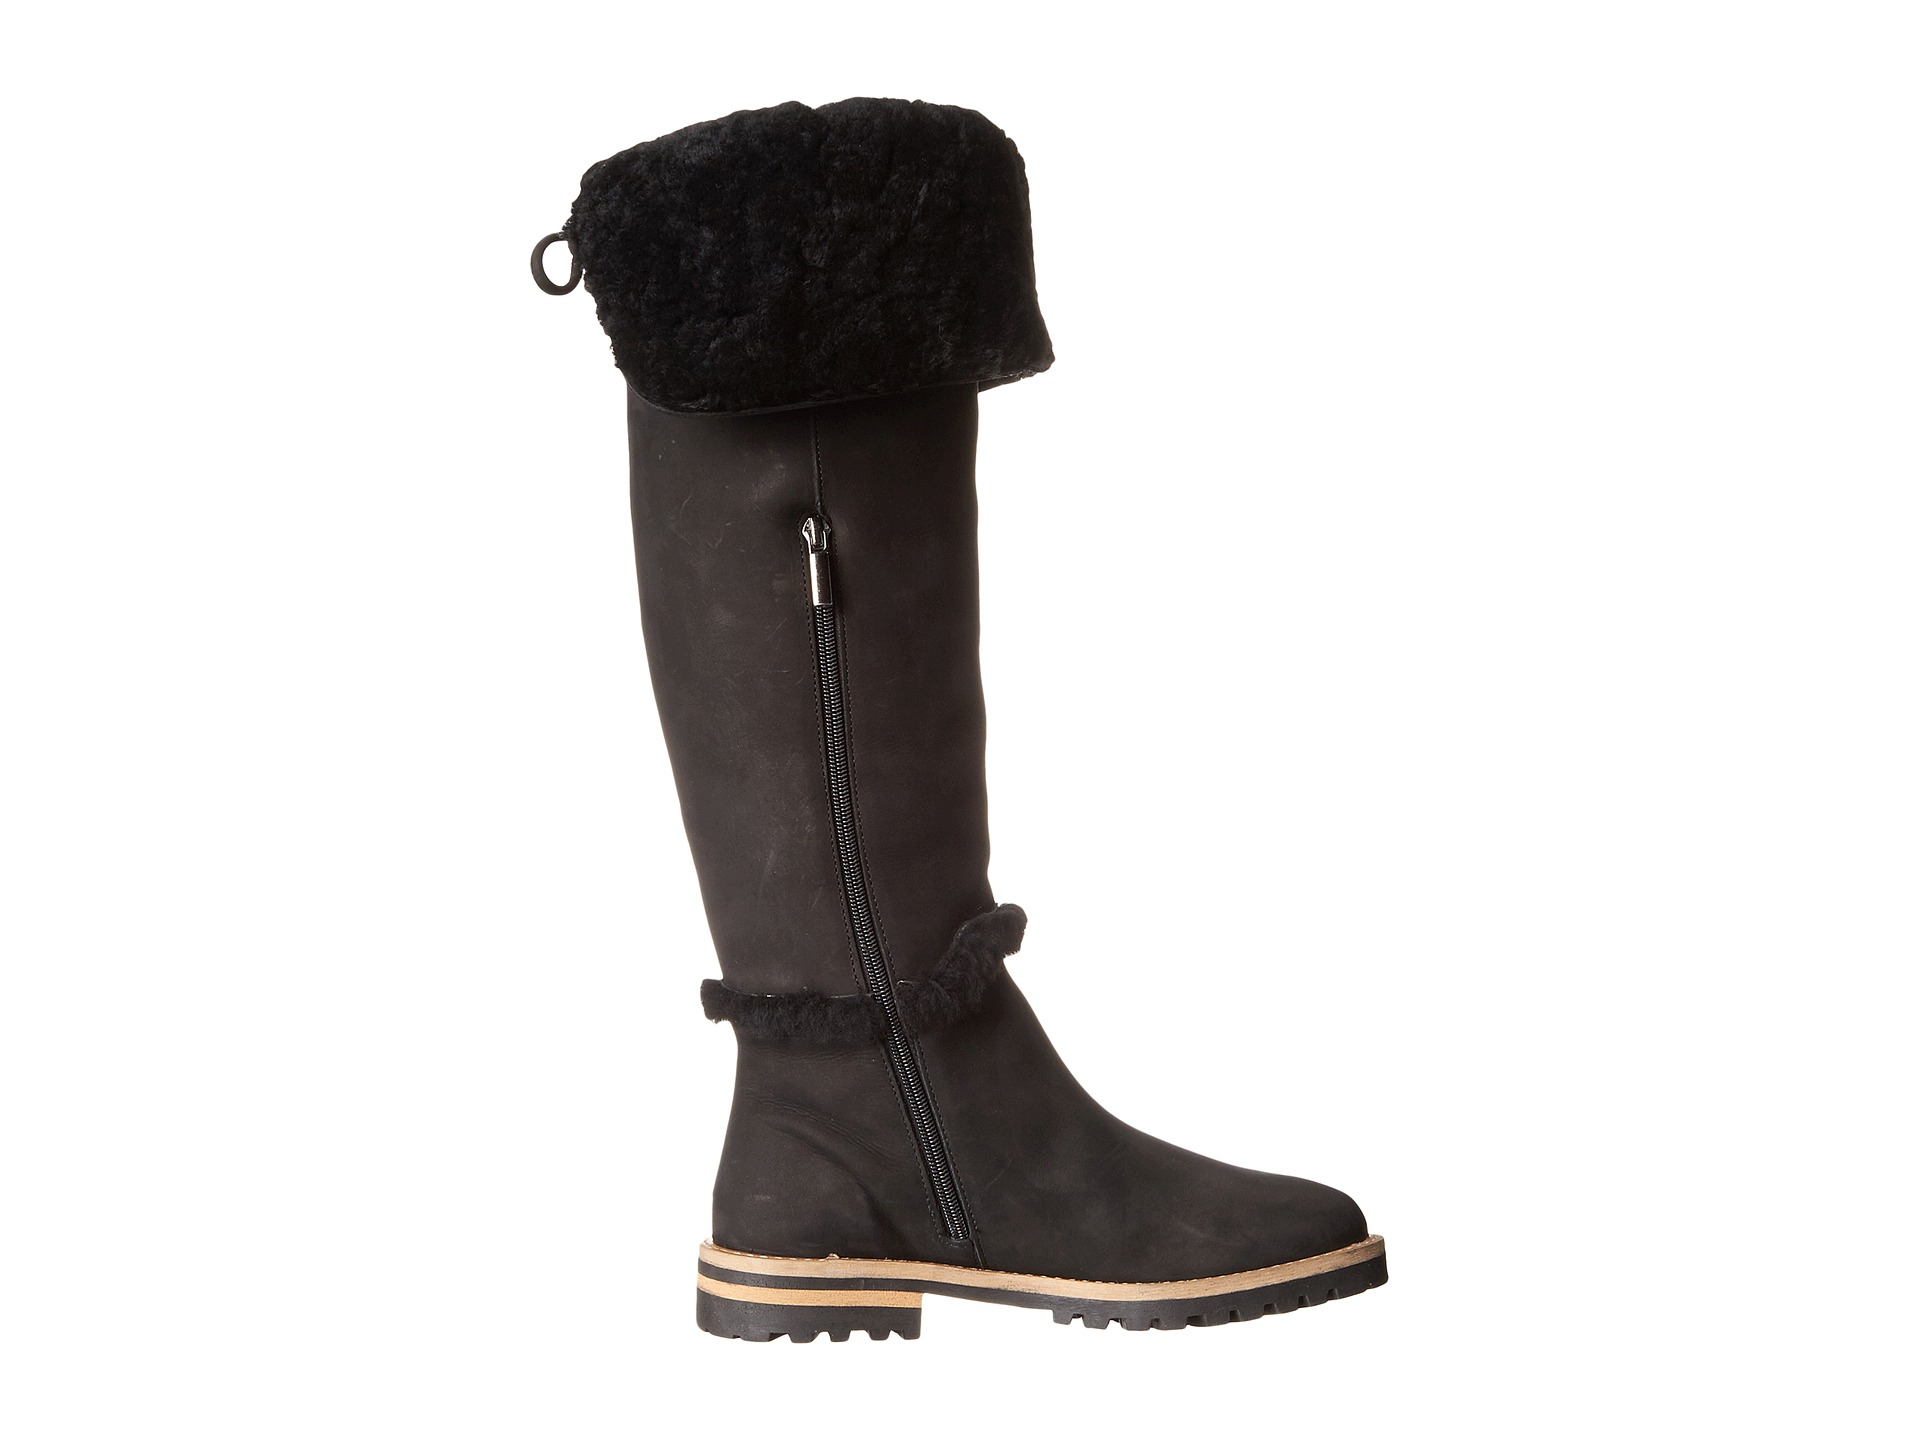 93a795ca72fd Lyst - Blondo Wynland Waterproof in Black